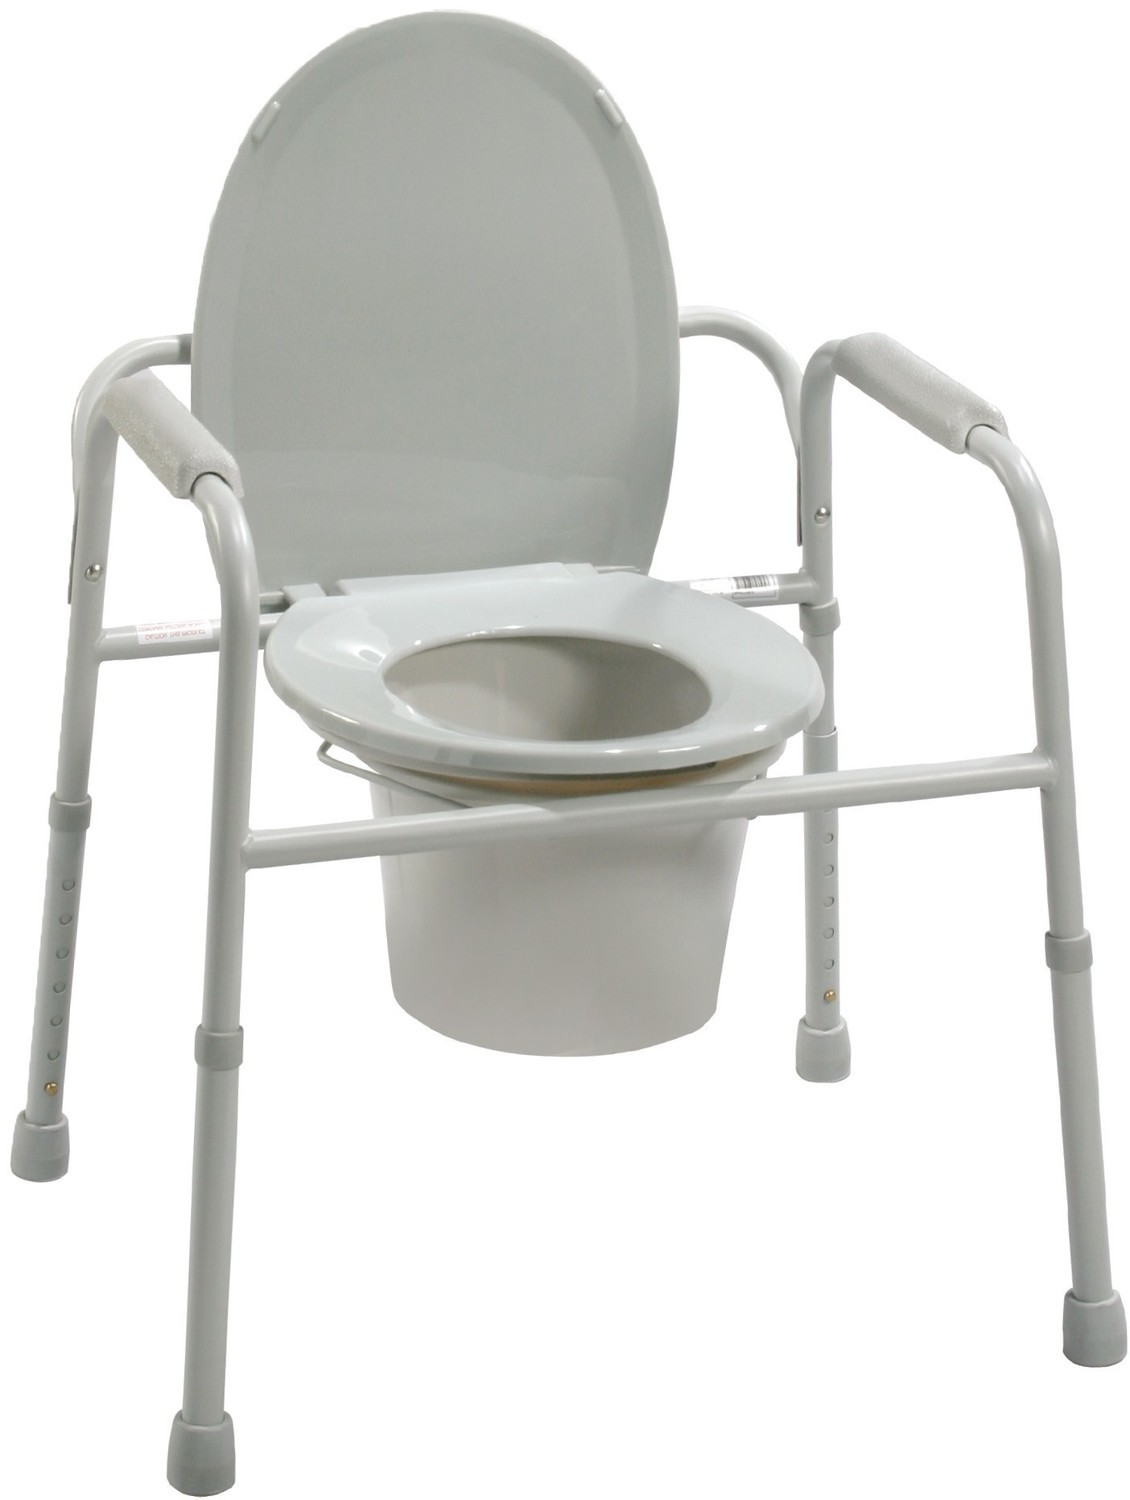 Commode with Bucket and Splash Guard